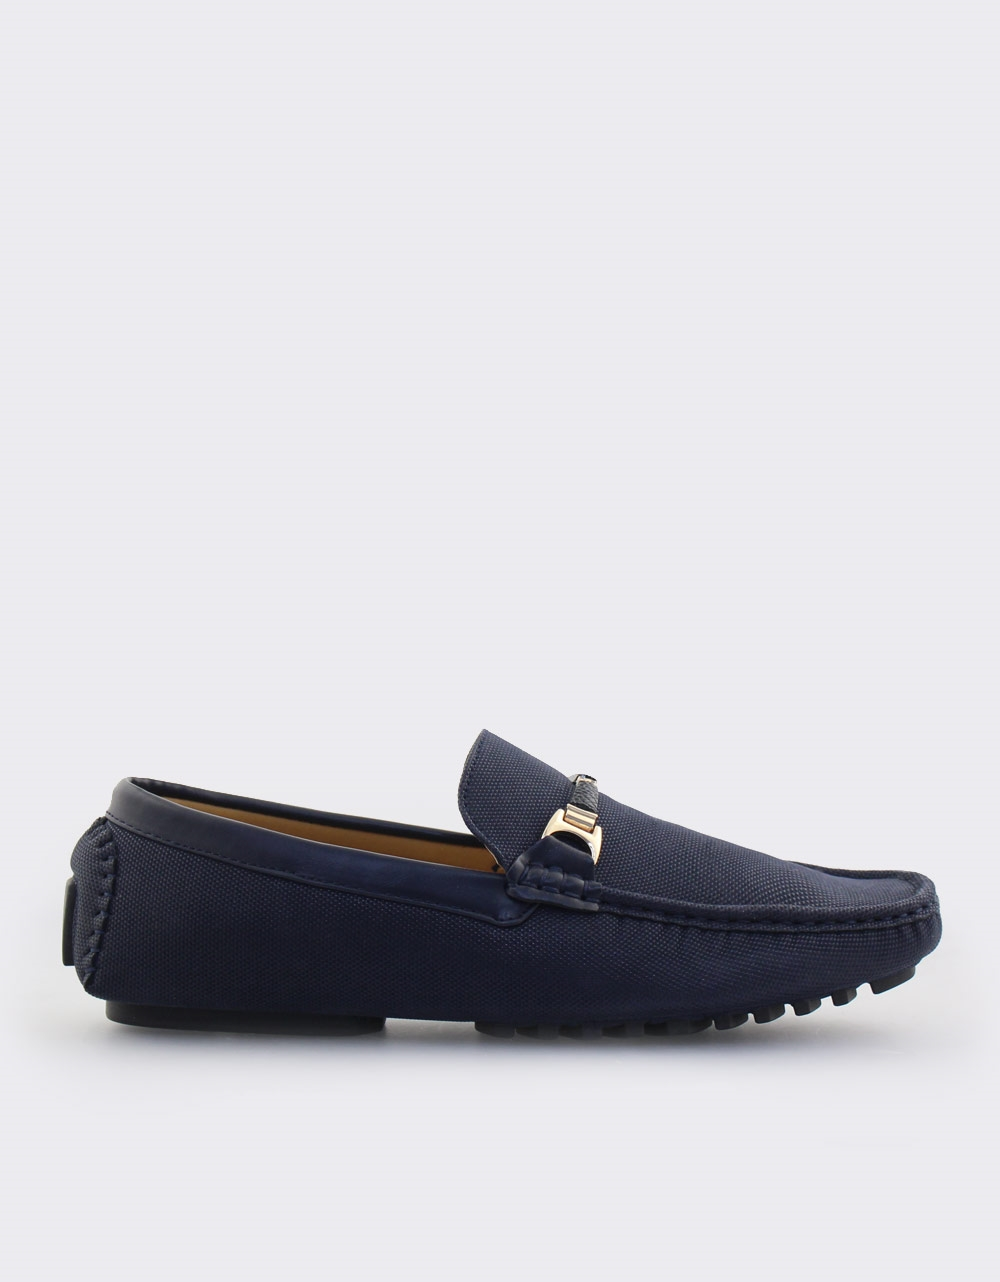 9399126a8e9 Ανδρικά loafers σε απλή γραμμή Μπλε